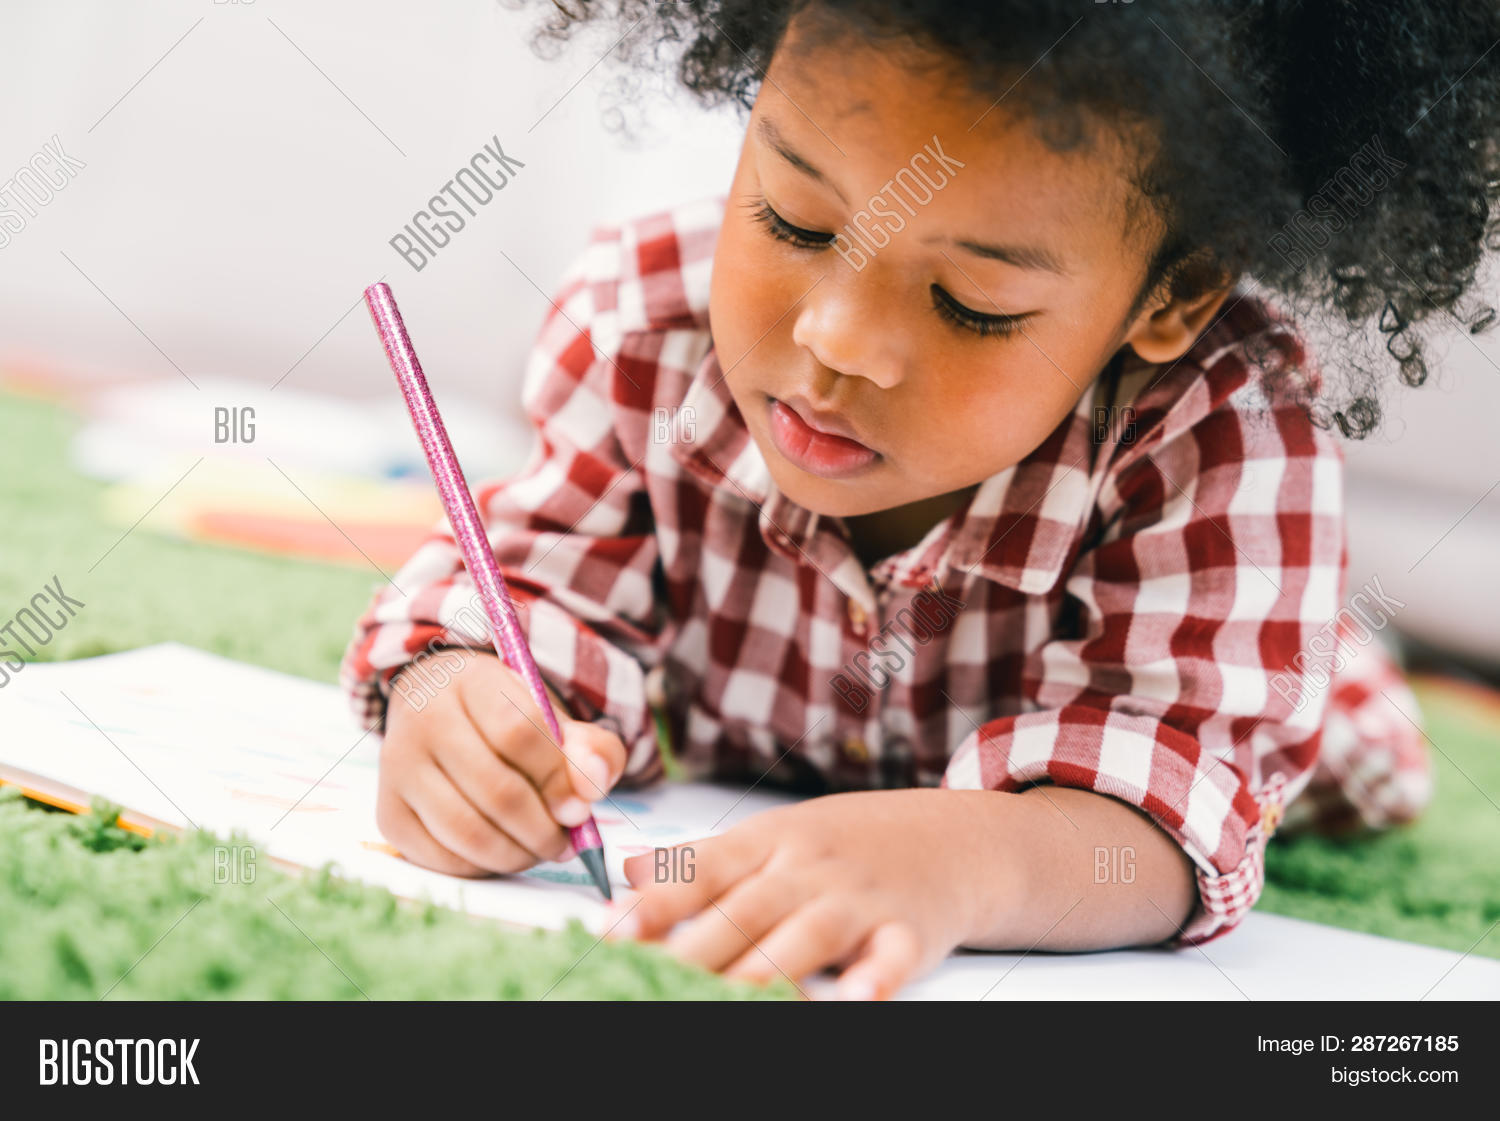 African,American,activity,art,artist,baby,black,book,child,childhood,children,color,creativity,cute,daughter,development,drawing,education,elementary,female,fun,girl,growing,growth,happy,home,homework,imagination,kid,kindergarten,knowledge,learning,little,mixed,offspring,pencil,people,play,playful,preschool,race,school,schoolgirl,small,smart,student,studying,writing,young,youth